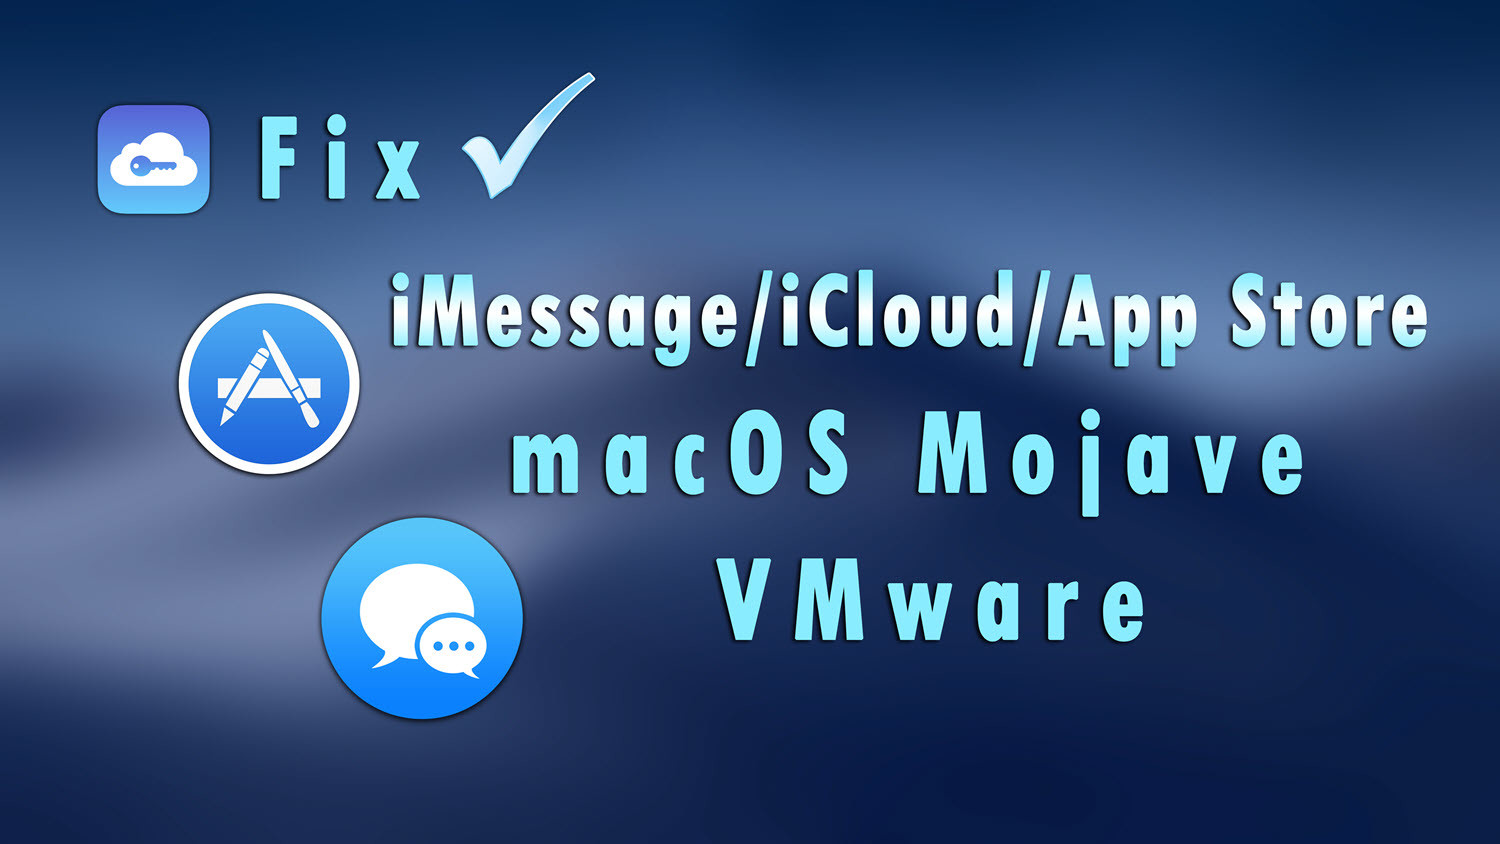 How to Fix macOS Mojave iMessage, iCloud, App Store on VMware